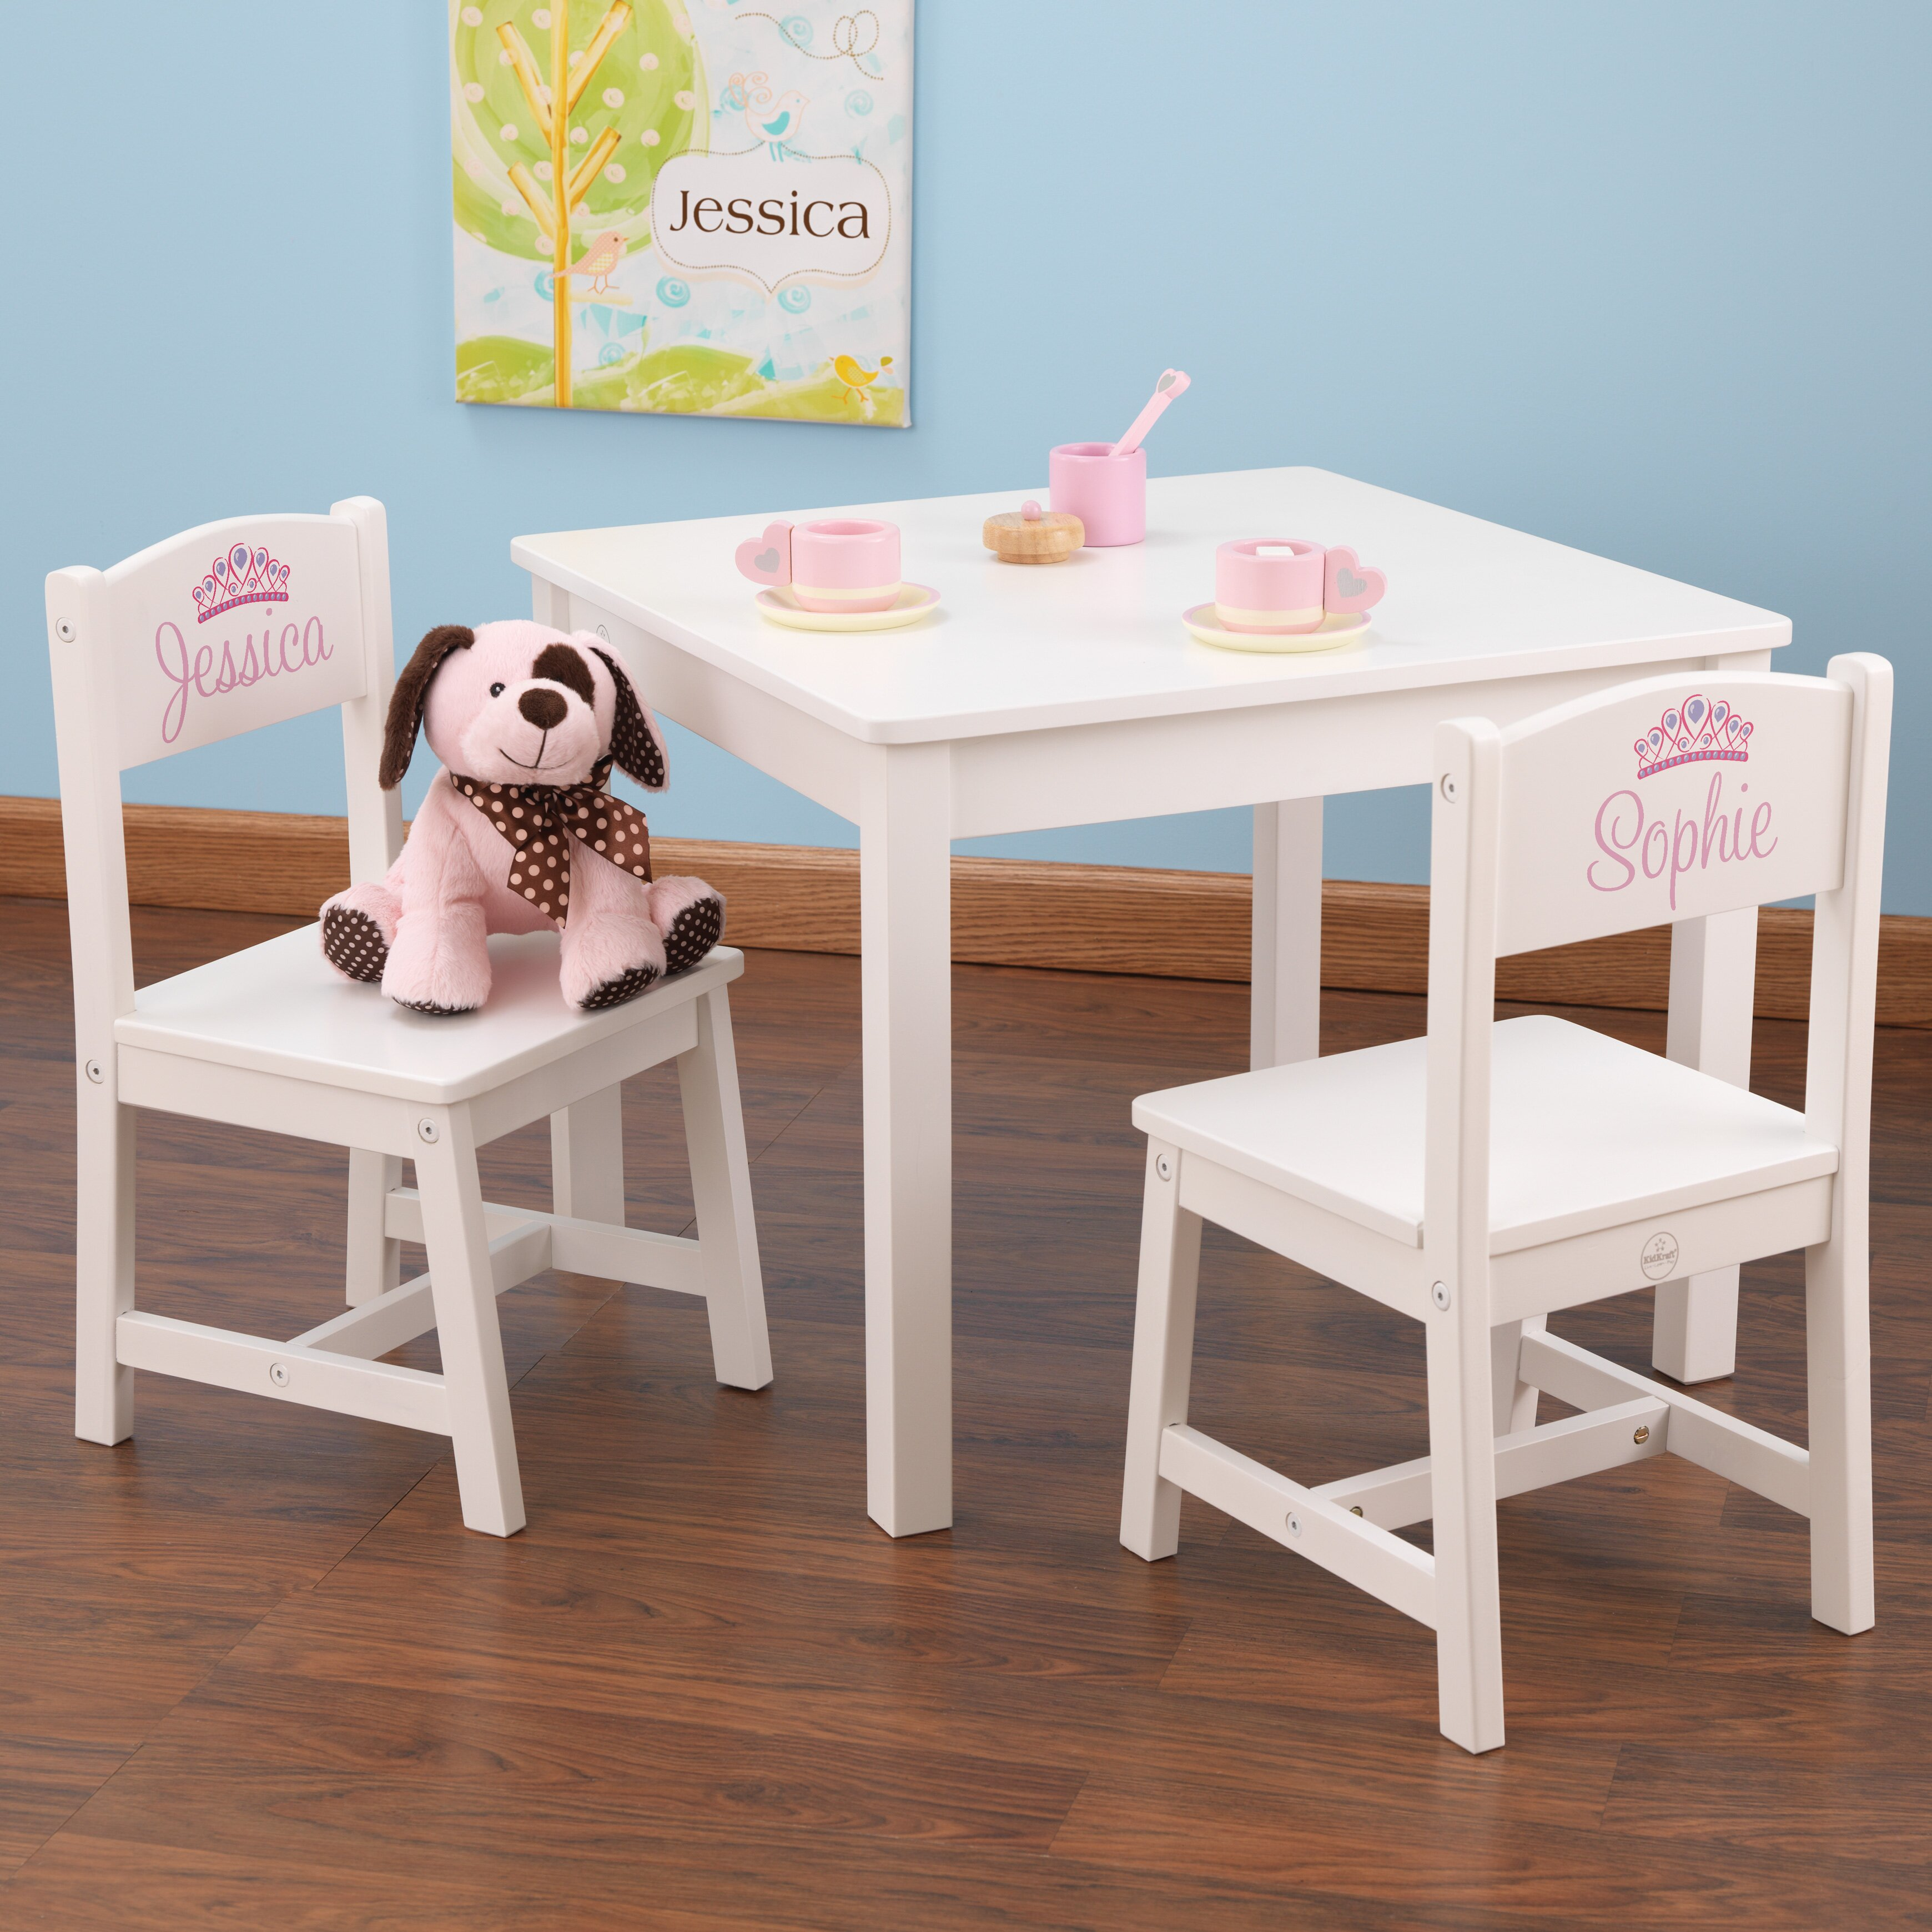 Kidkraft children 39 s 3 piece square table and chair set - Wayfair childrens bedroom furniture ...